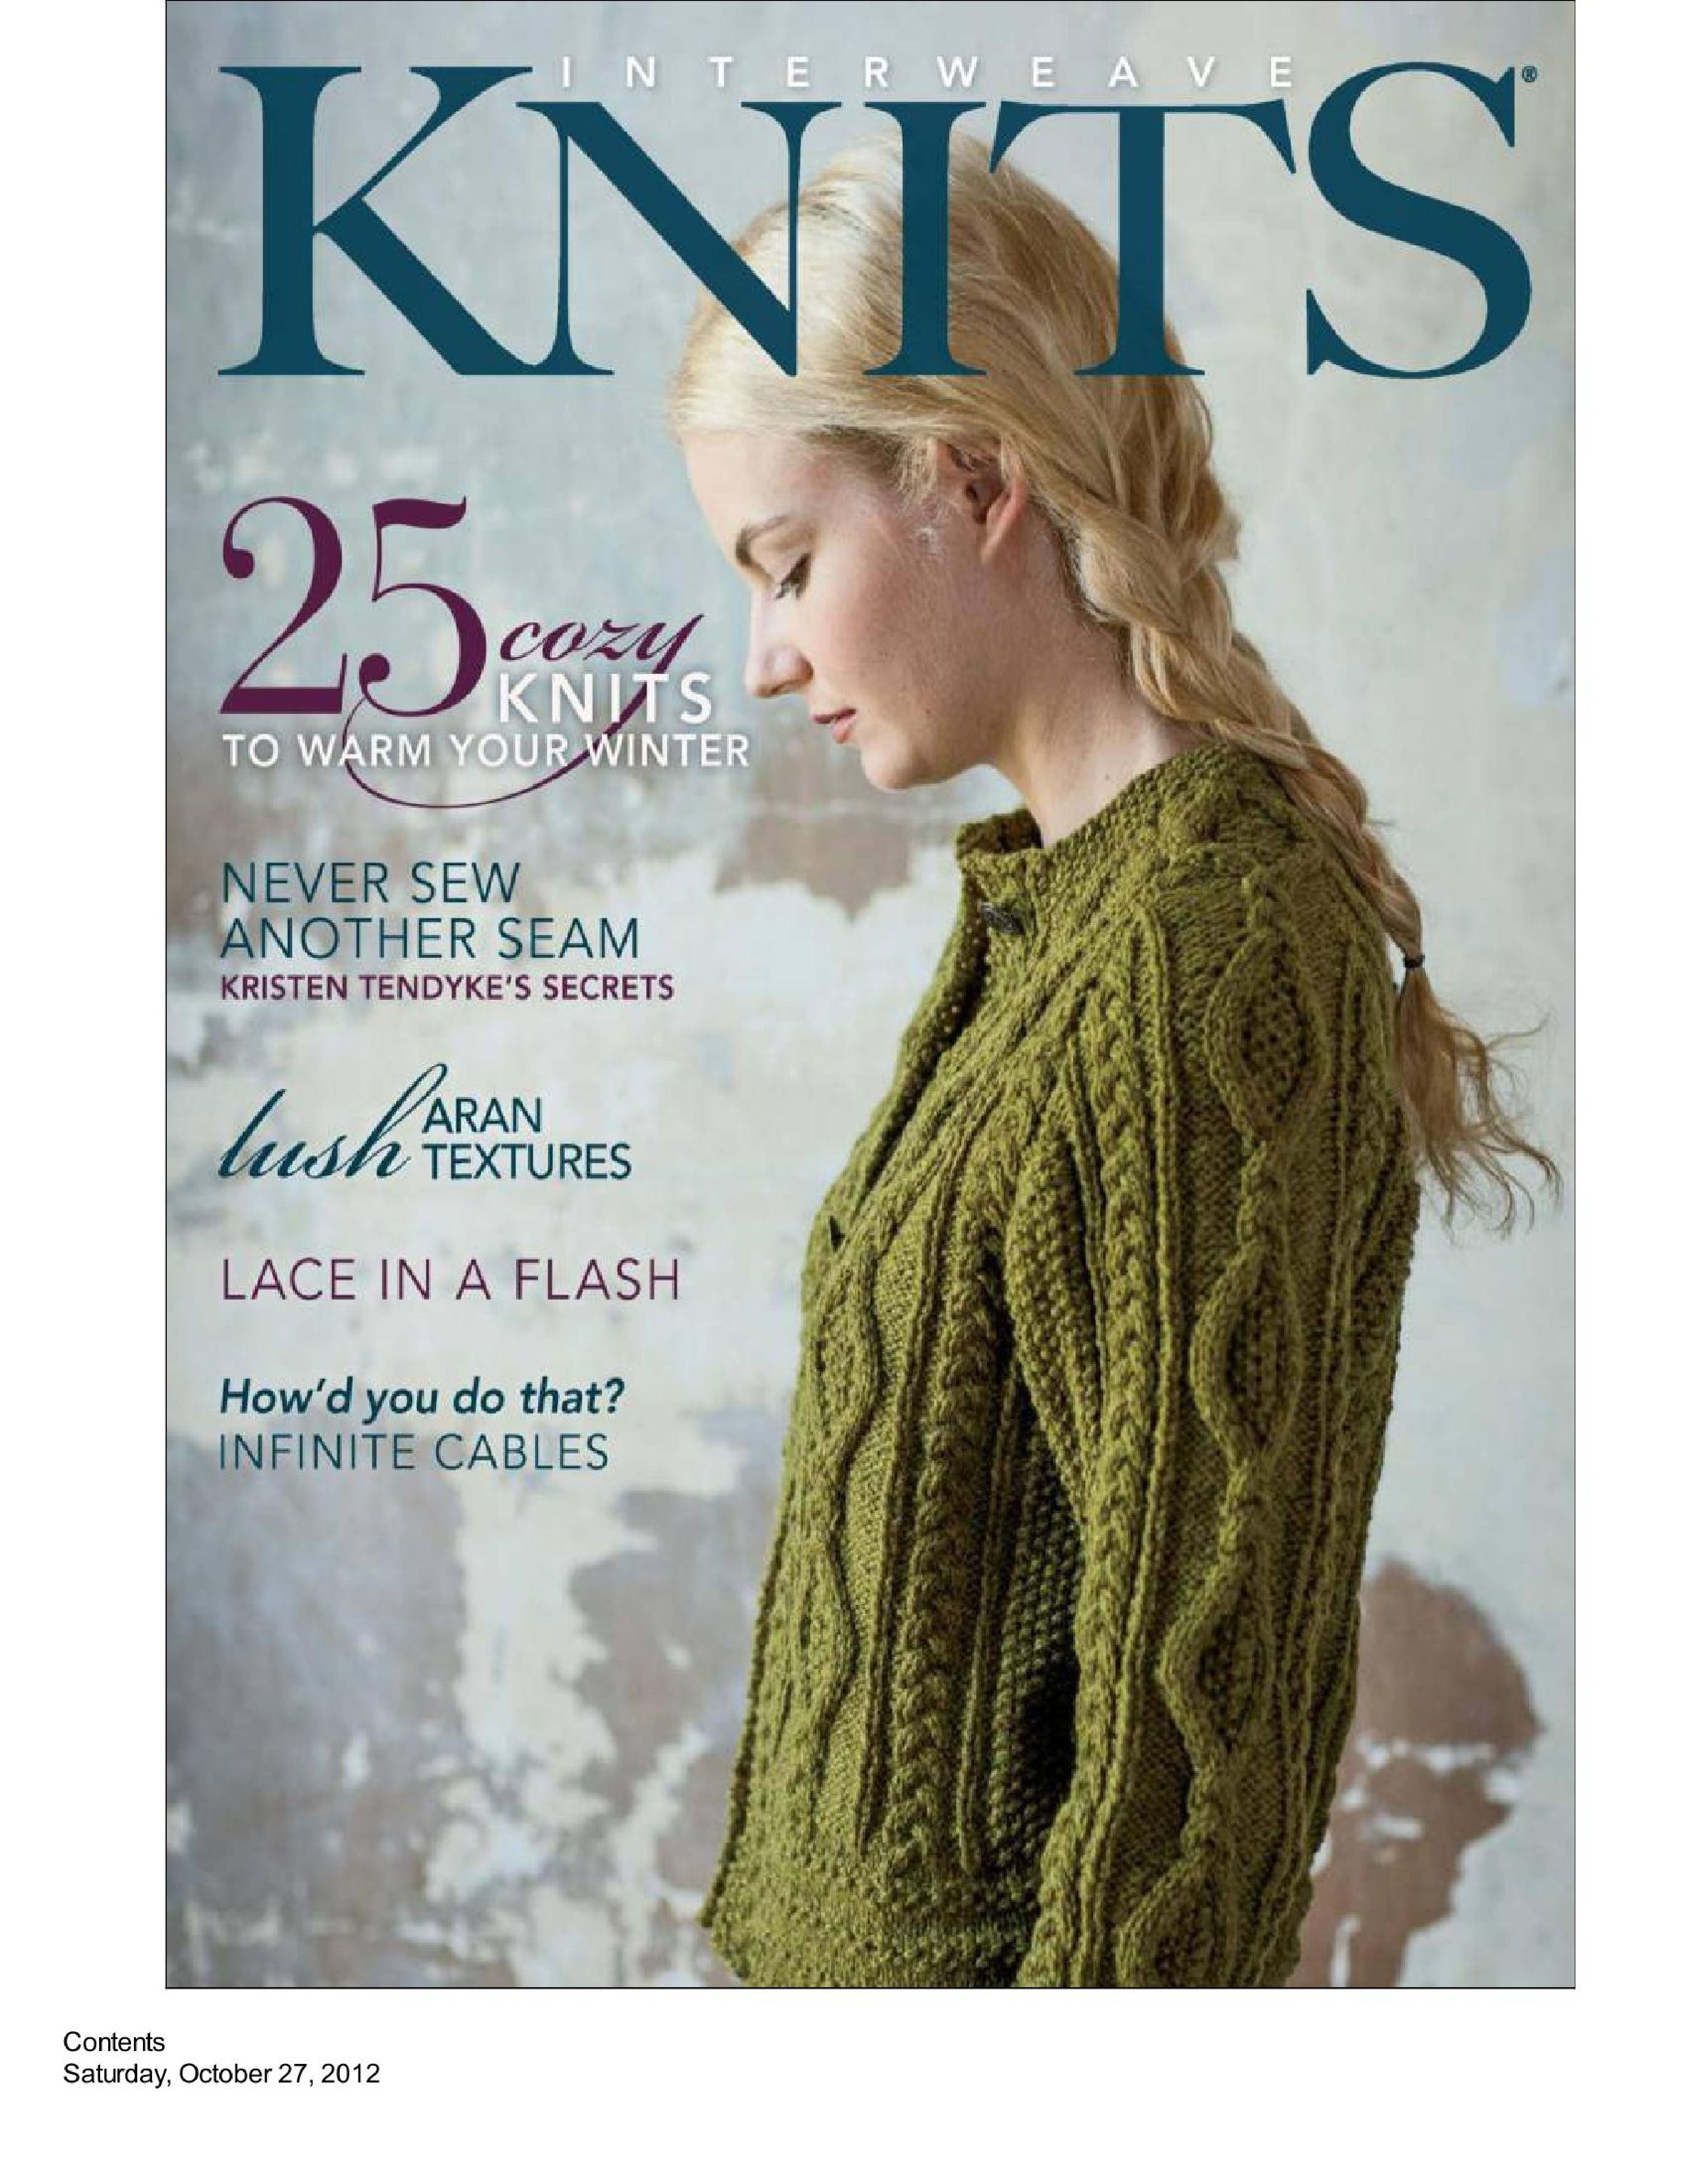 Interweave Knits Winter Pages 1 Of 88 Knit Mags Knitting